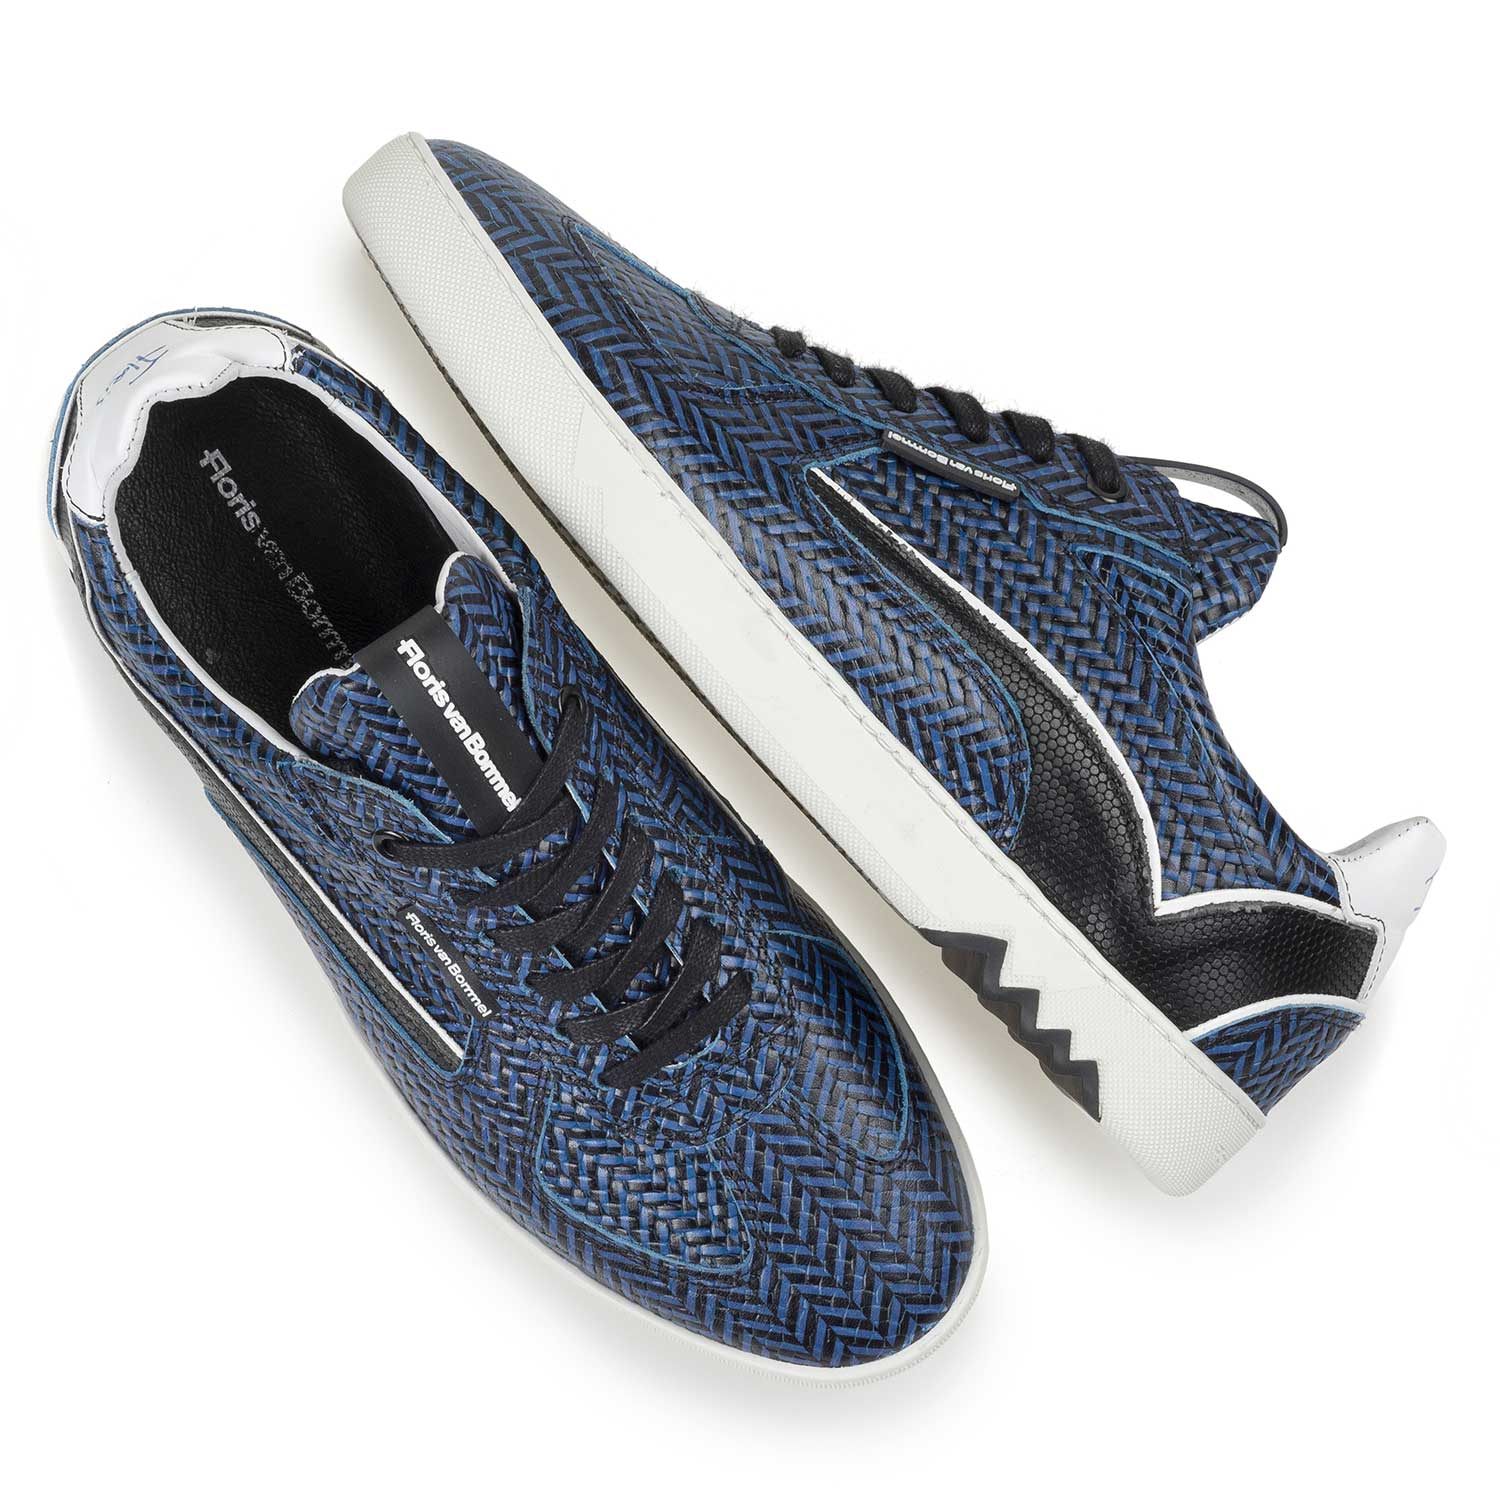 16342/06 - Blue leather sneaker with a herringbone pattern